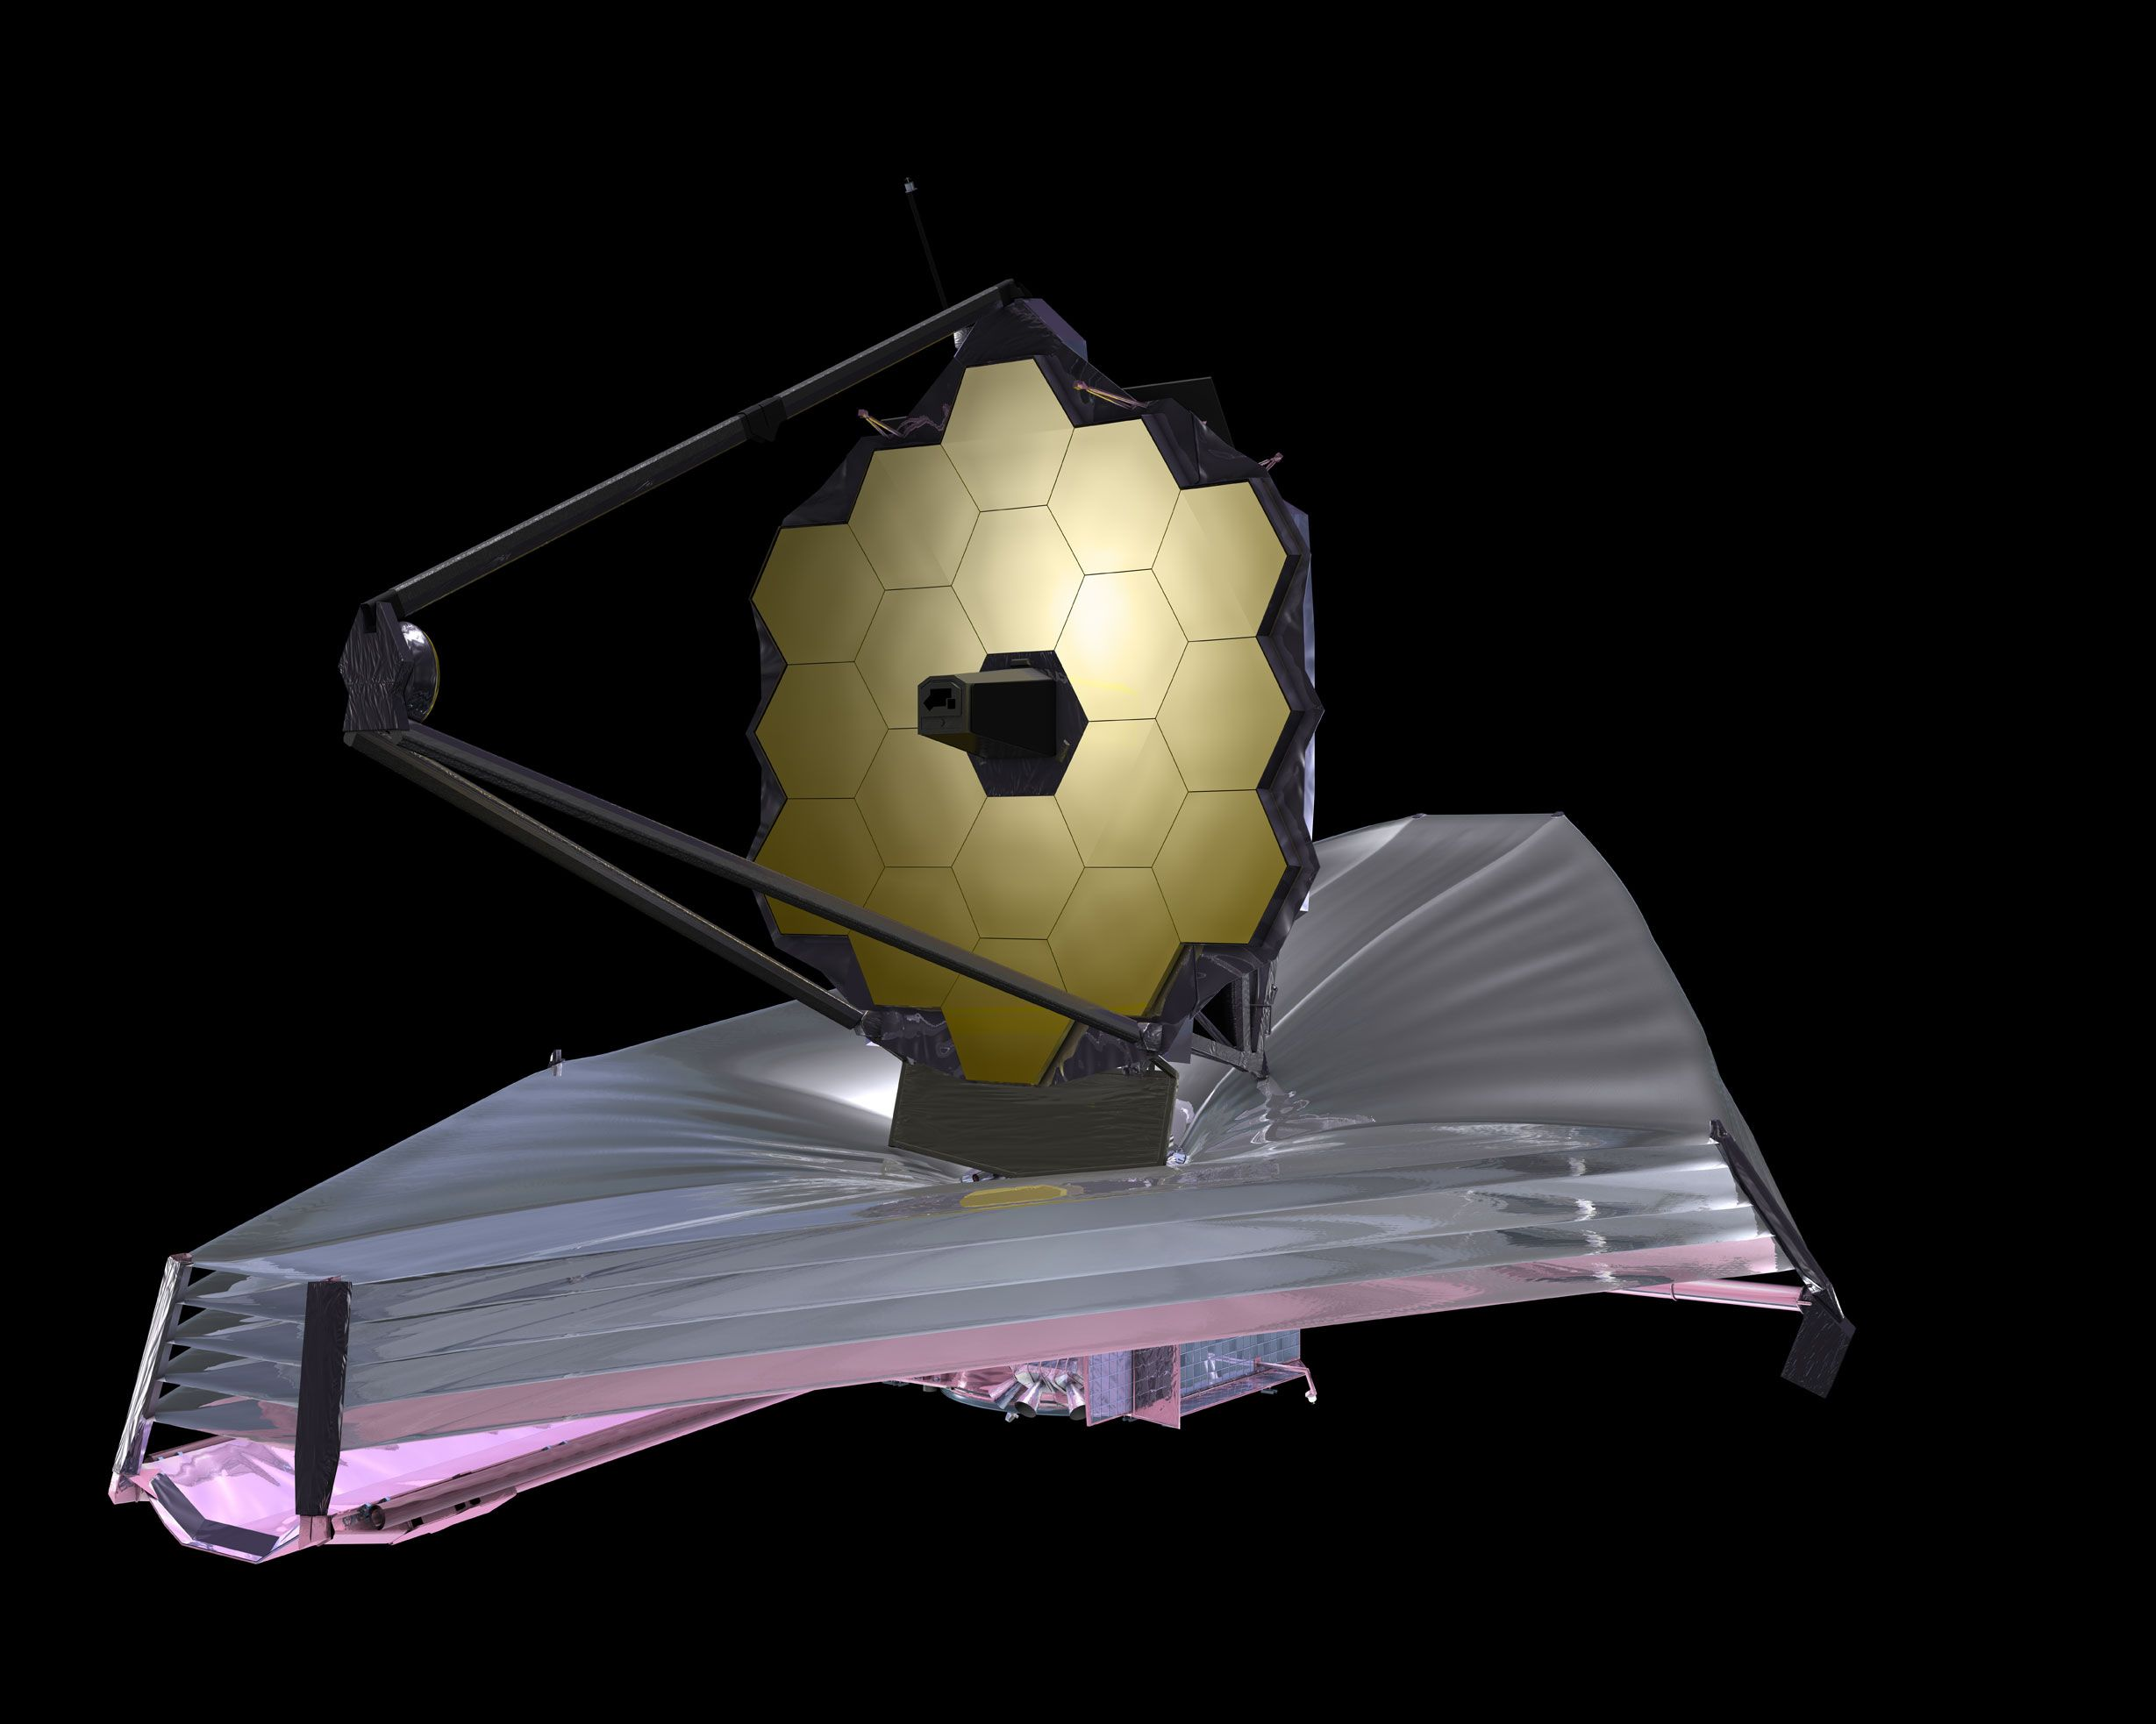 09_29_james webb telescope